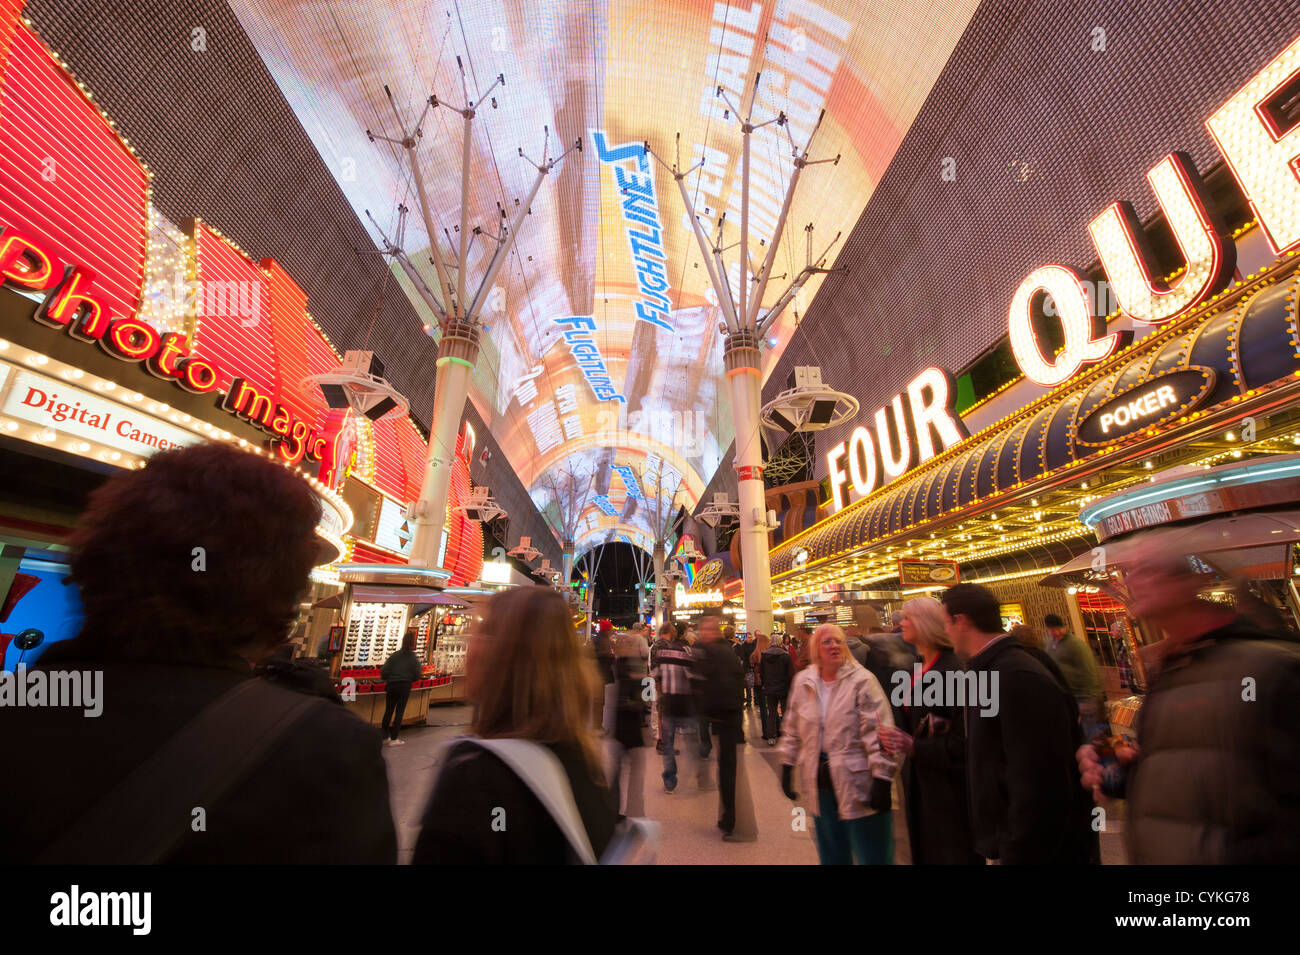 Nighttime At The Fremont Street Experience Neon Lights Las Vegas Stock Photo